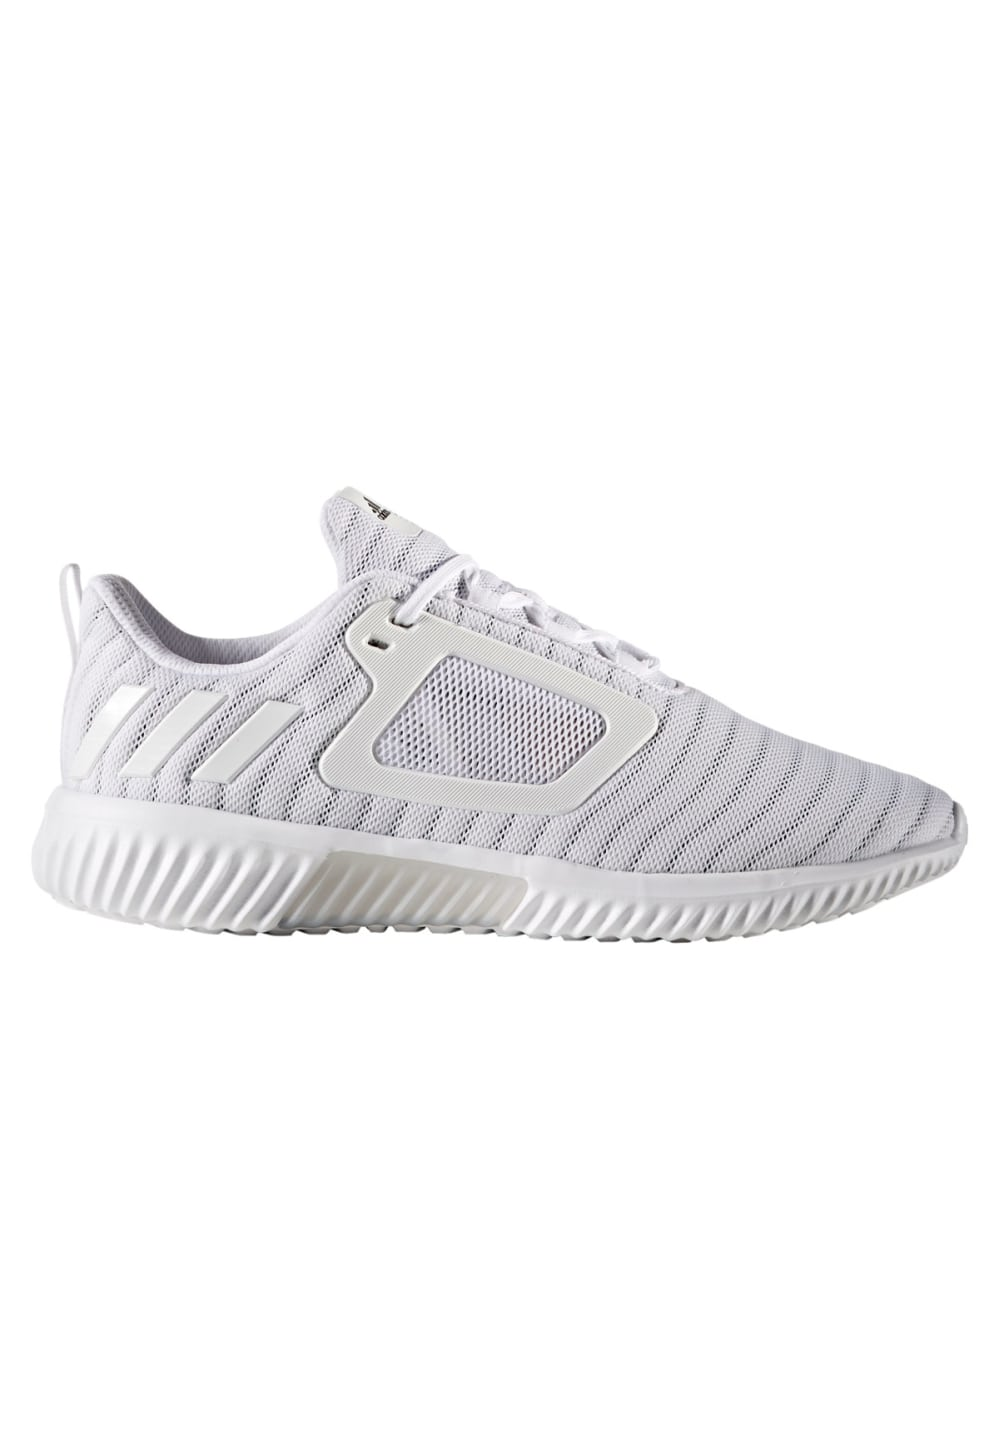 the latest 4cbd8 0fd93 adidas Climacool Cm - Running shoes for Men - White